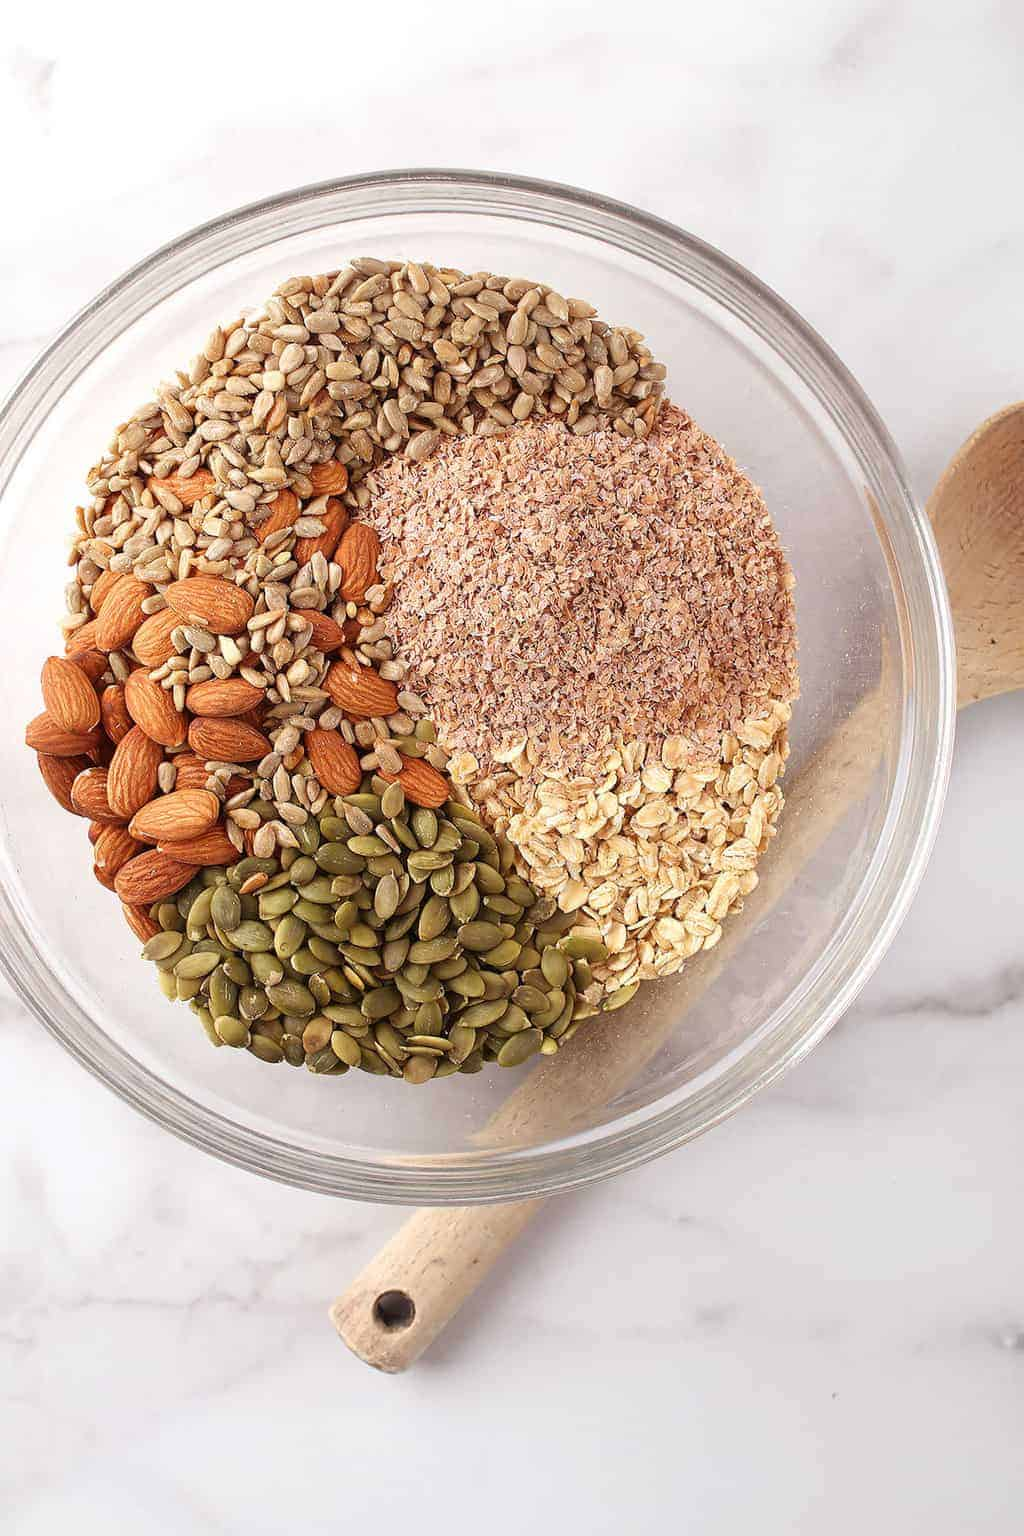 Oats, seeds, and nuts in a mixing bowl